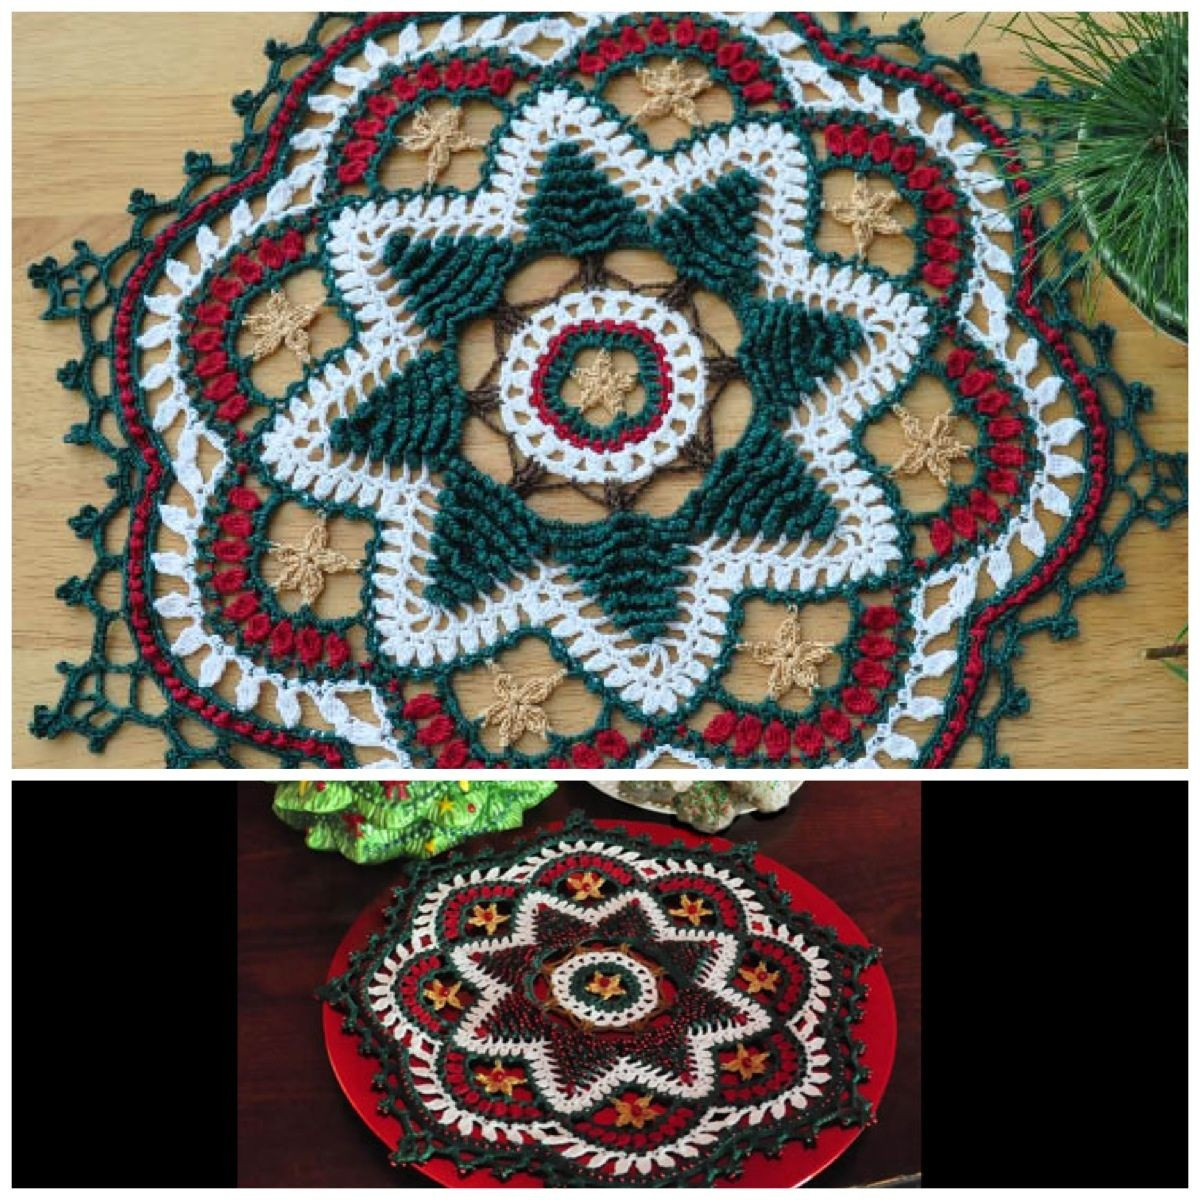 Awesome Oh Christmas Tree Doily by Kathryn White Can Be Stitched Christmas Doilies Of Wonderful 44 Photos Christmas Doilies